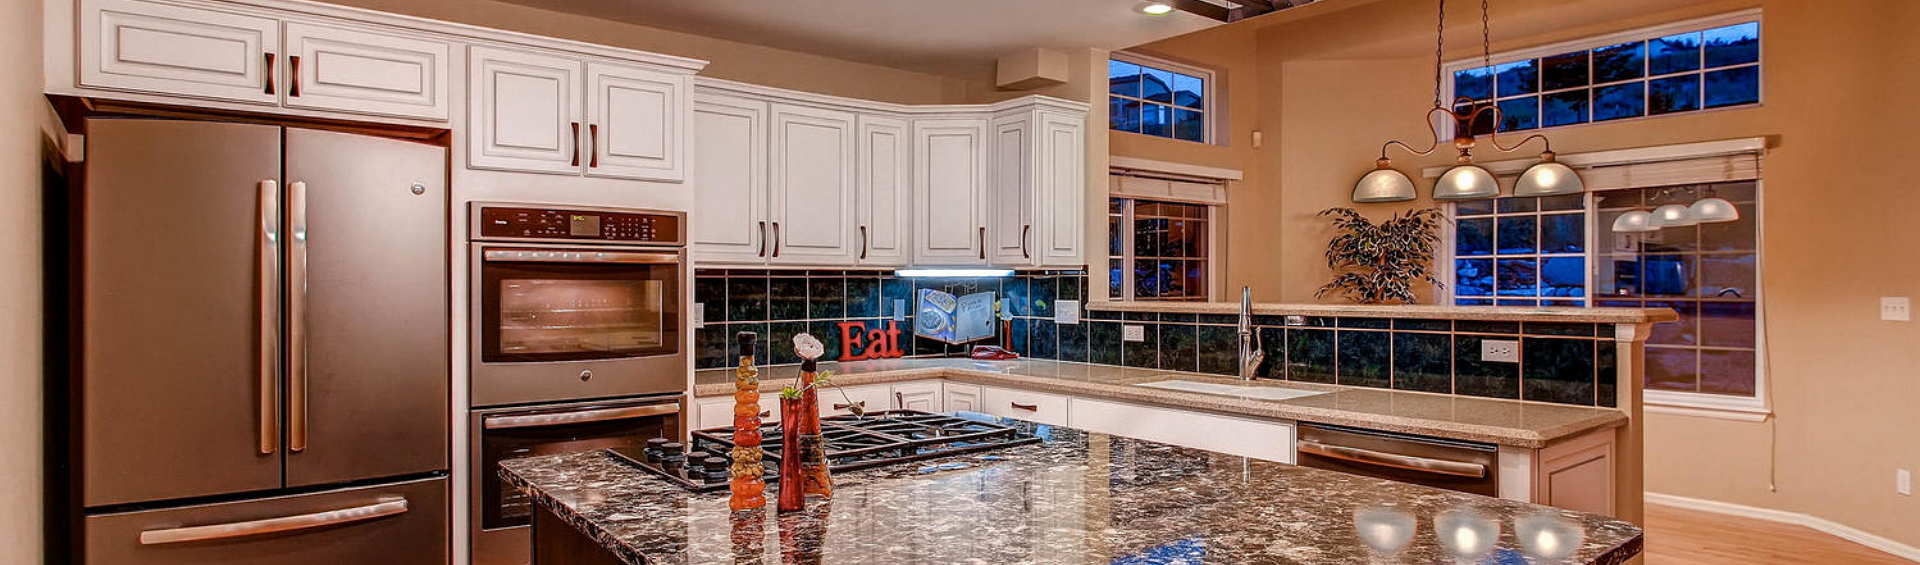 kitchen remodeling tallahassee fl | kitchen remodeling company near